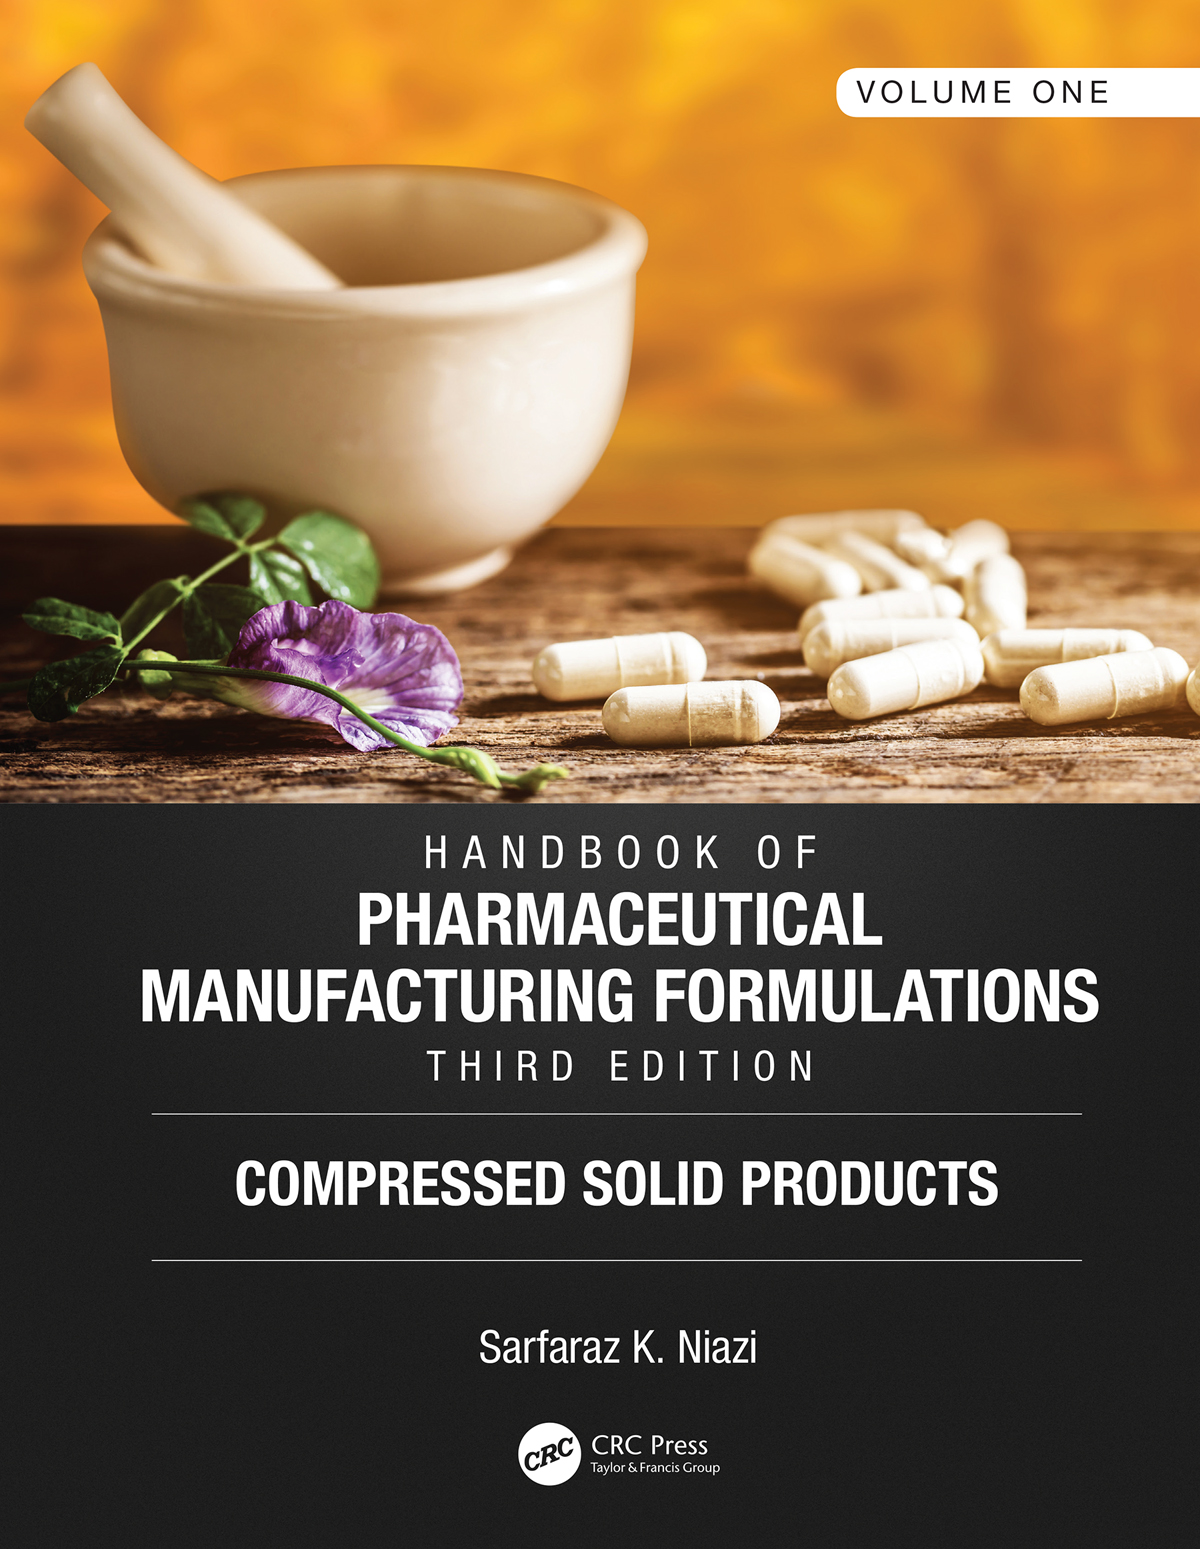 Handbook of Pharmaceutical Manufacturing Formulations, Third Edition: Volume One, Compressed Solid Products book cover